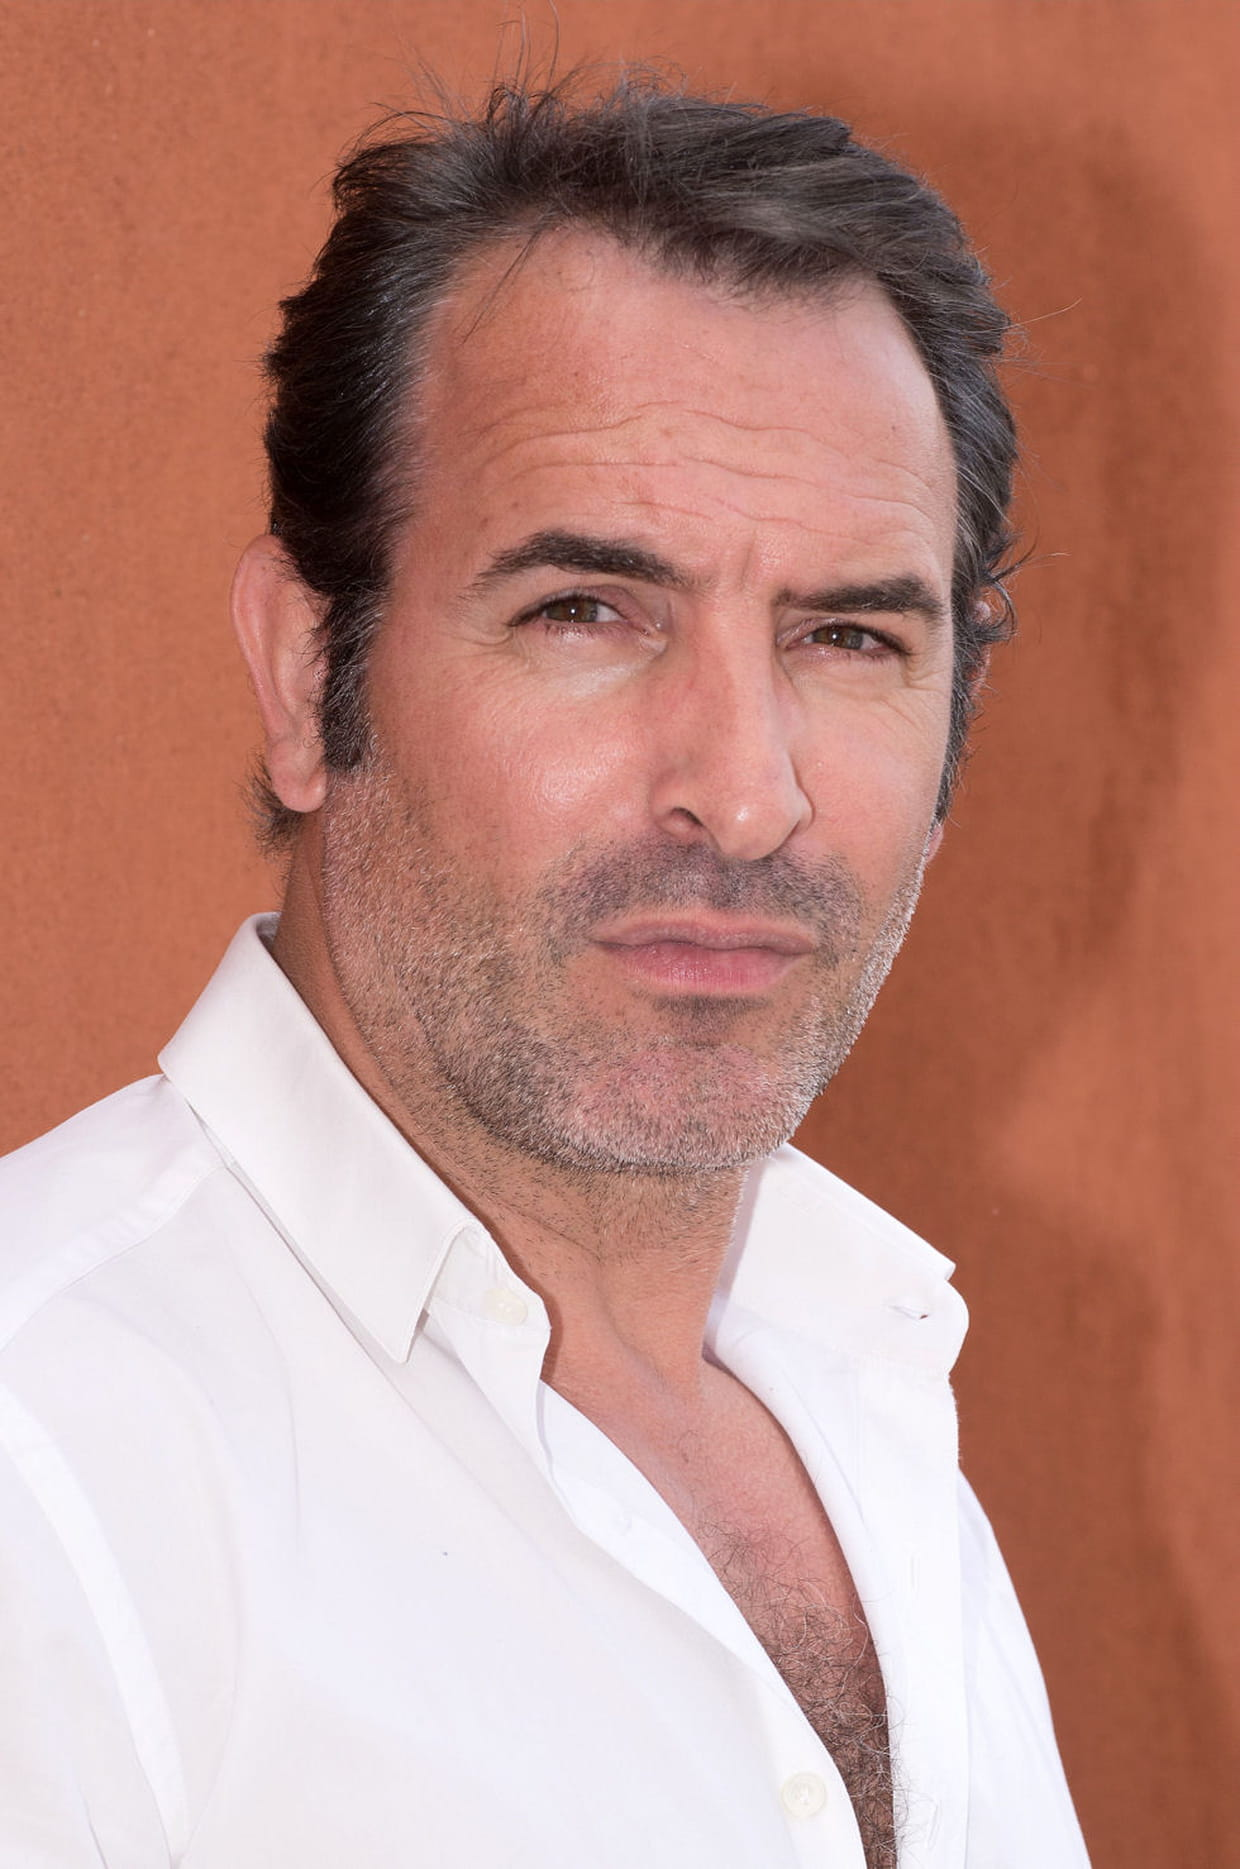 Jean dujardin for Dujardin services